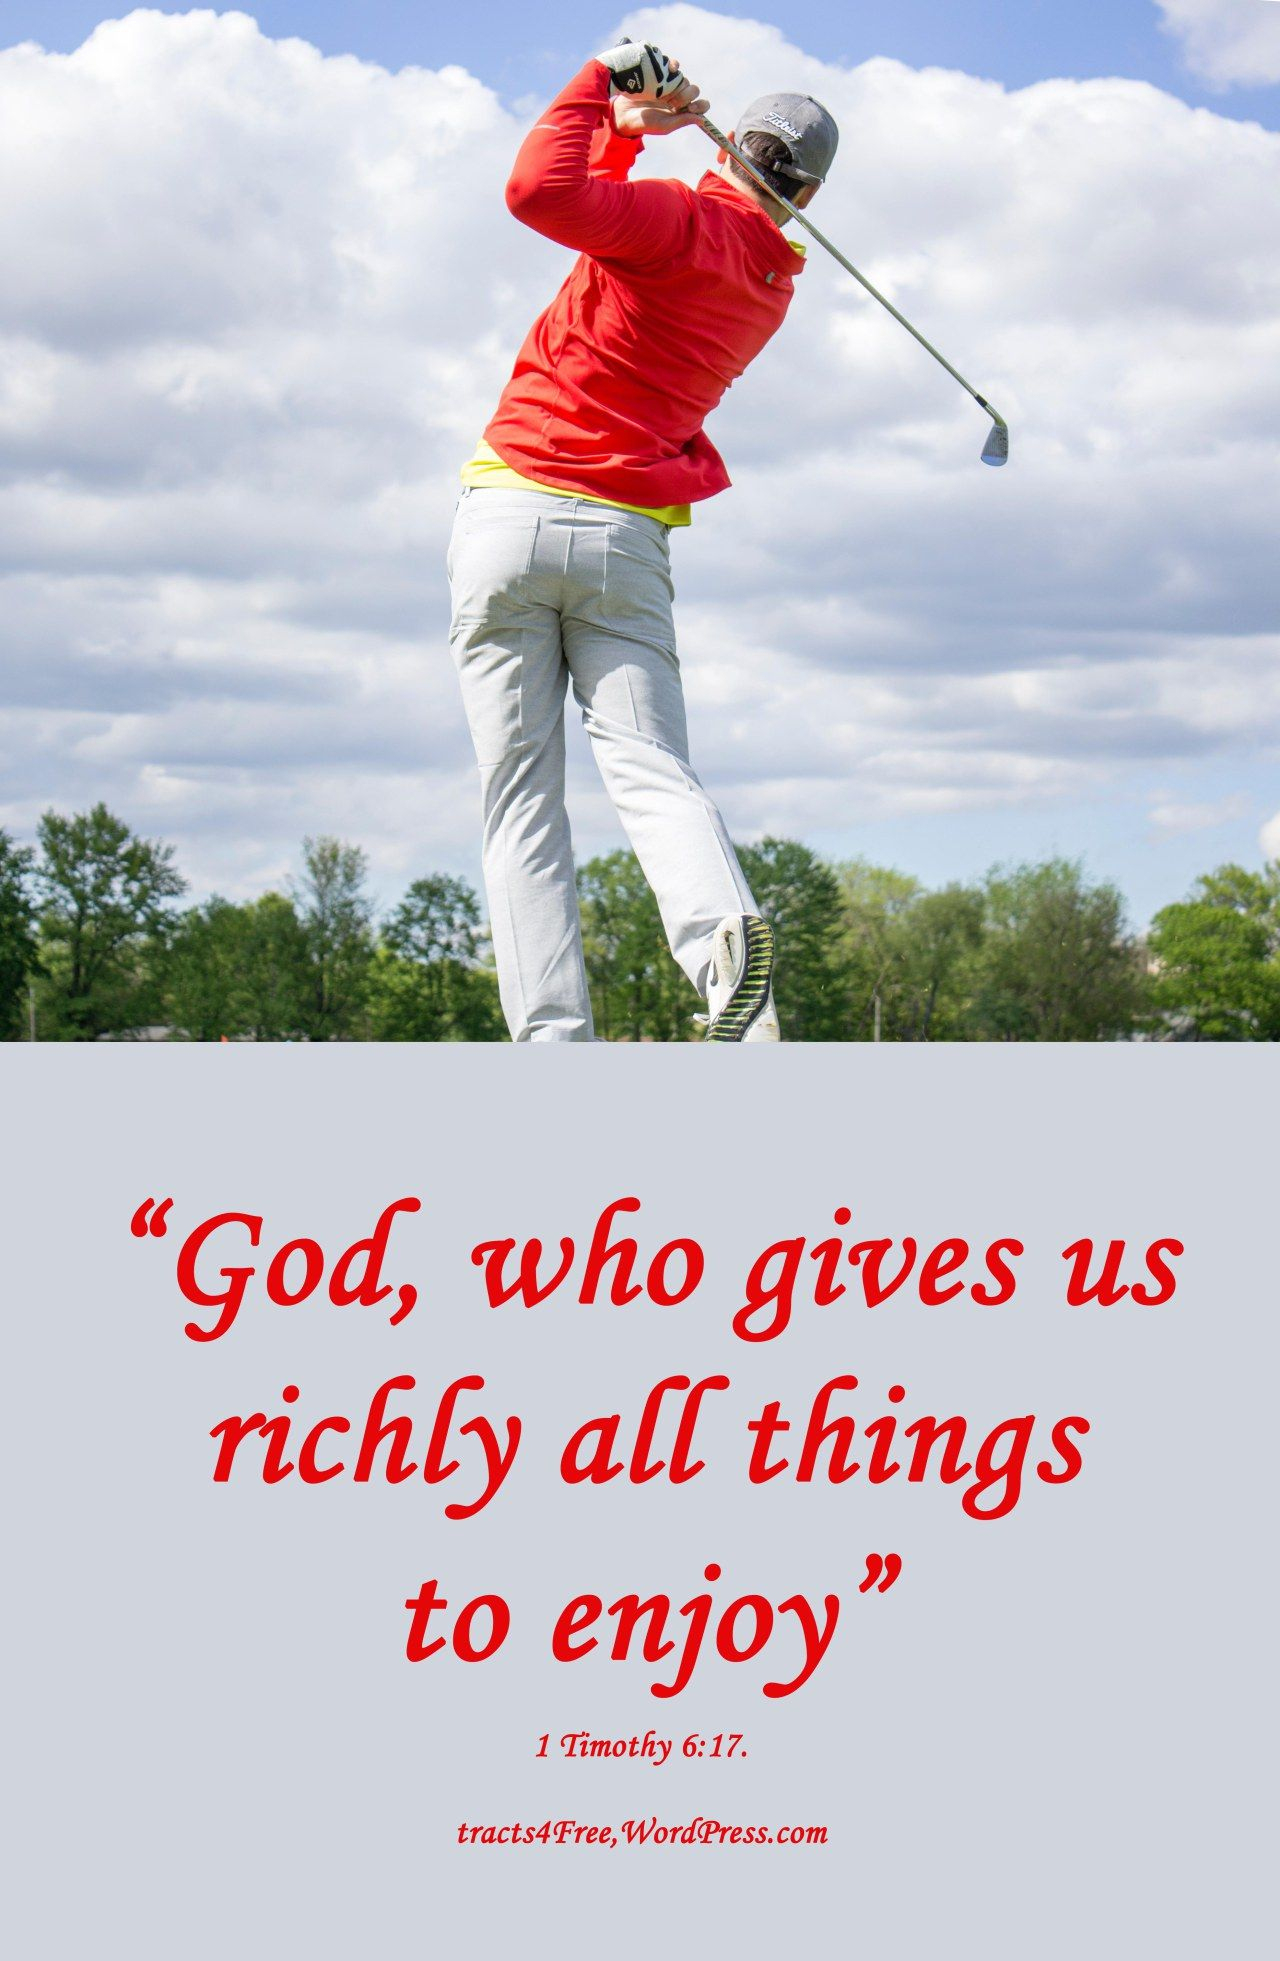 Christian Sports Posters 1   Christian Posters   Pinterest - Free Printable Sports Posters